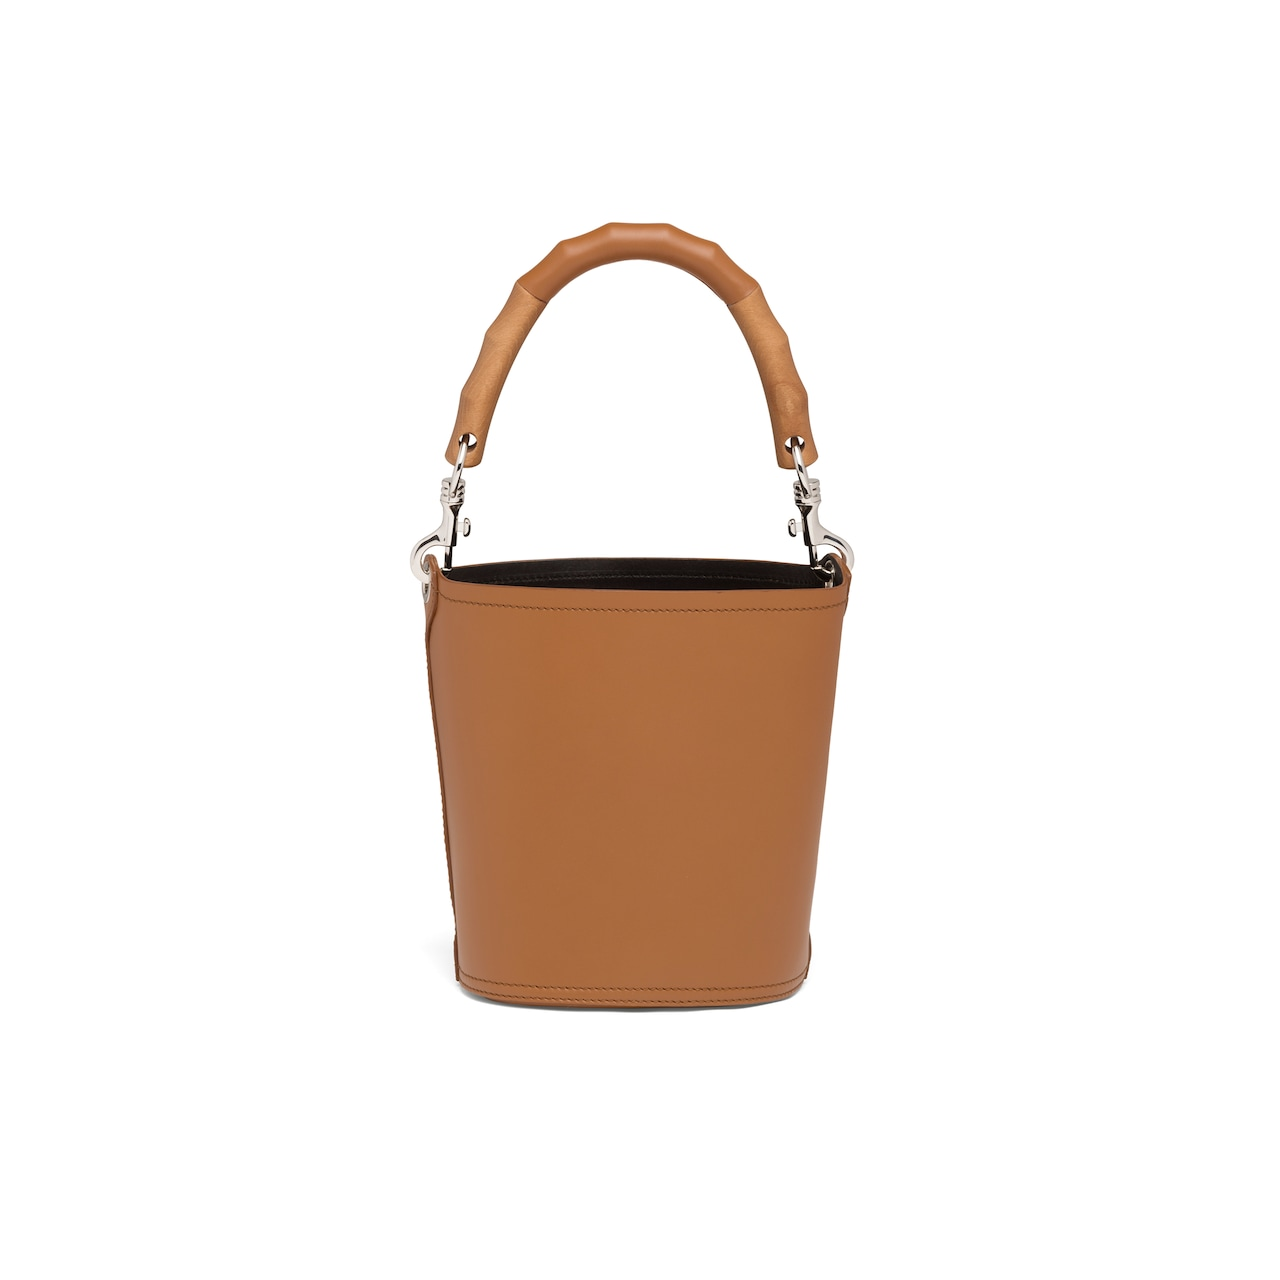 Leather bucket bag with wooden handle 4